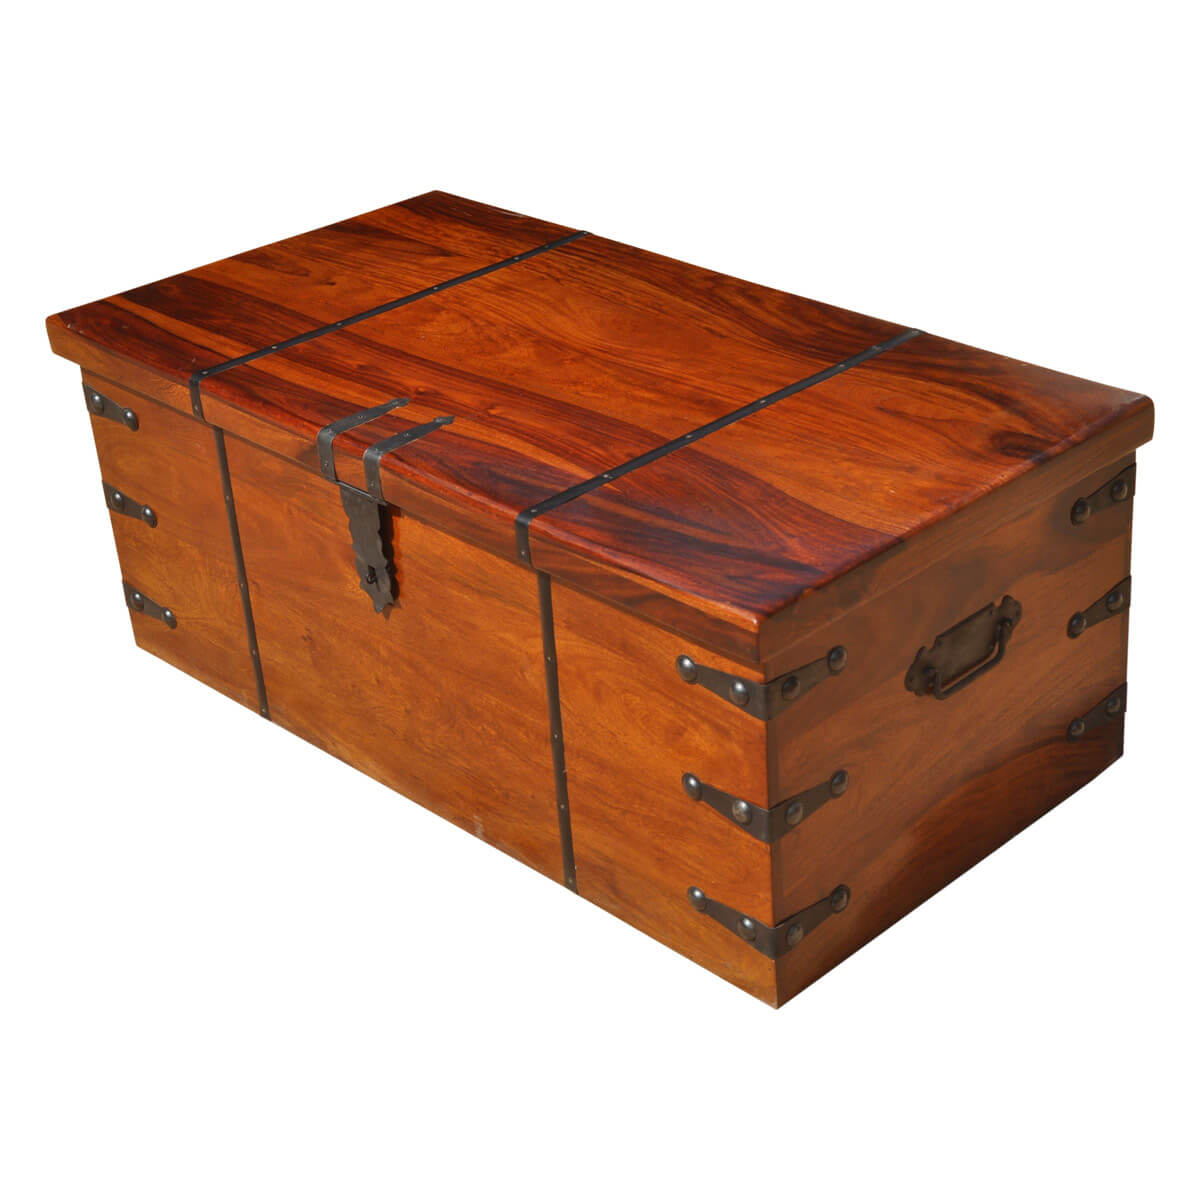 Large solid wood with metal accents storage trunk coffee table chest Metal chest coffee table